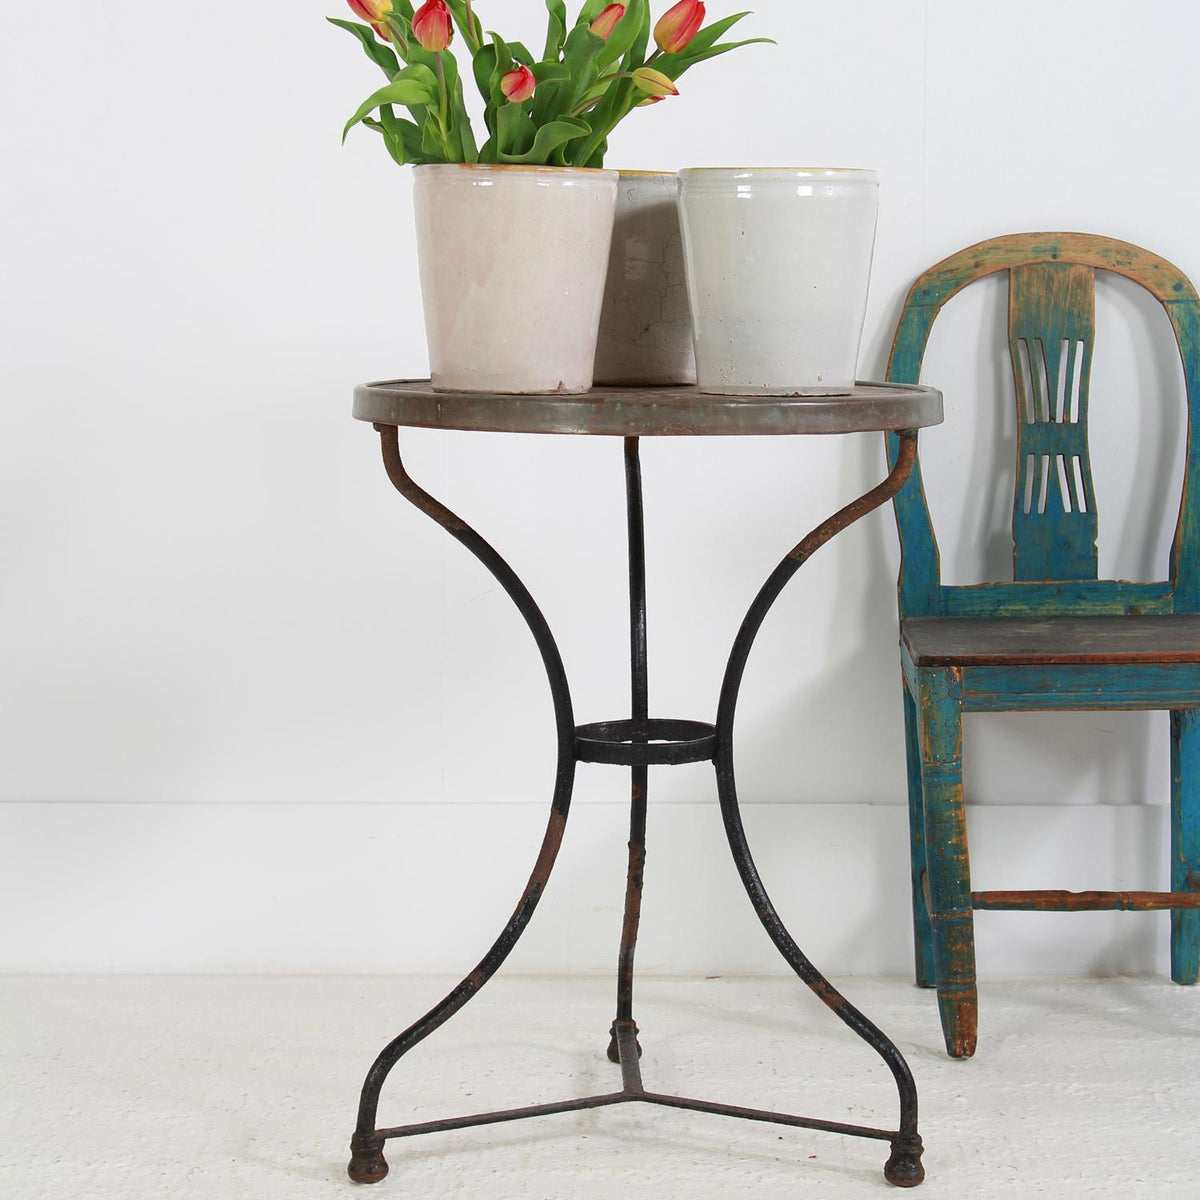 French Round Wrought Iron and Marble Garden Table